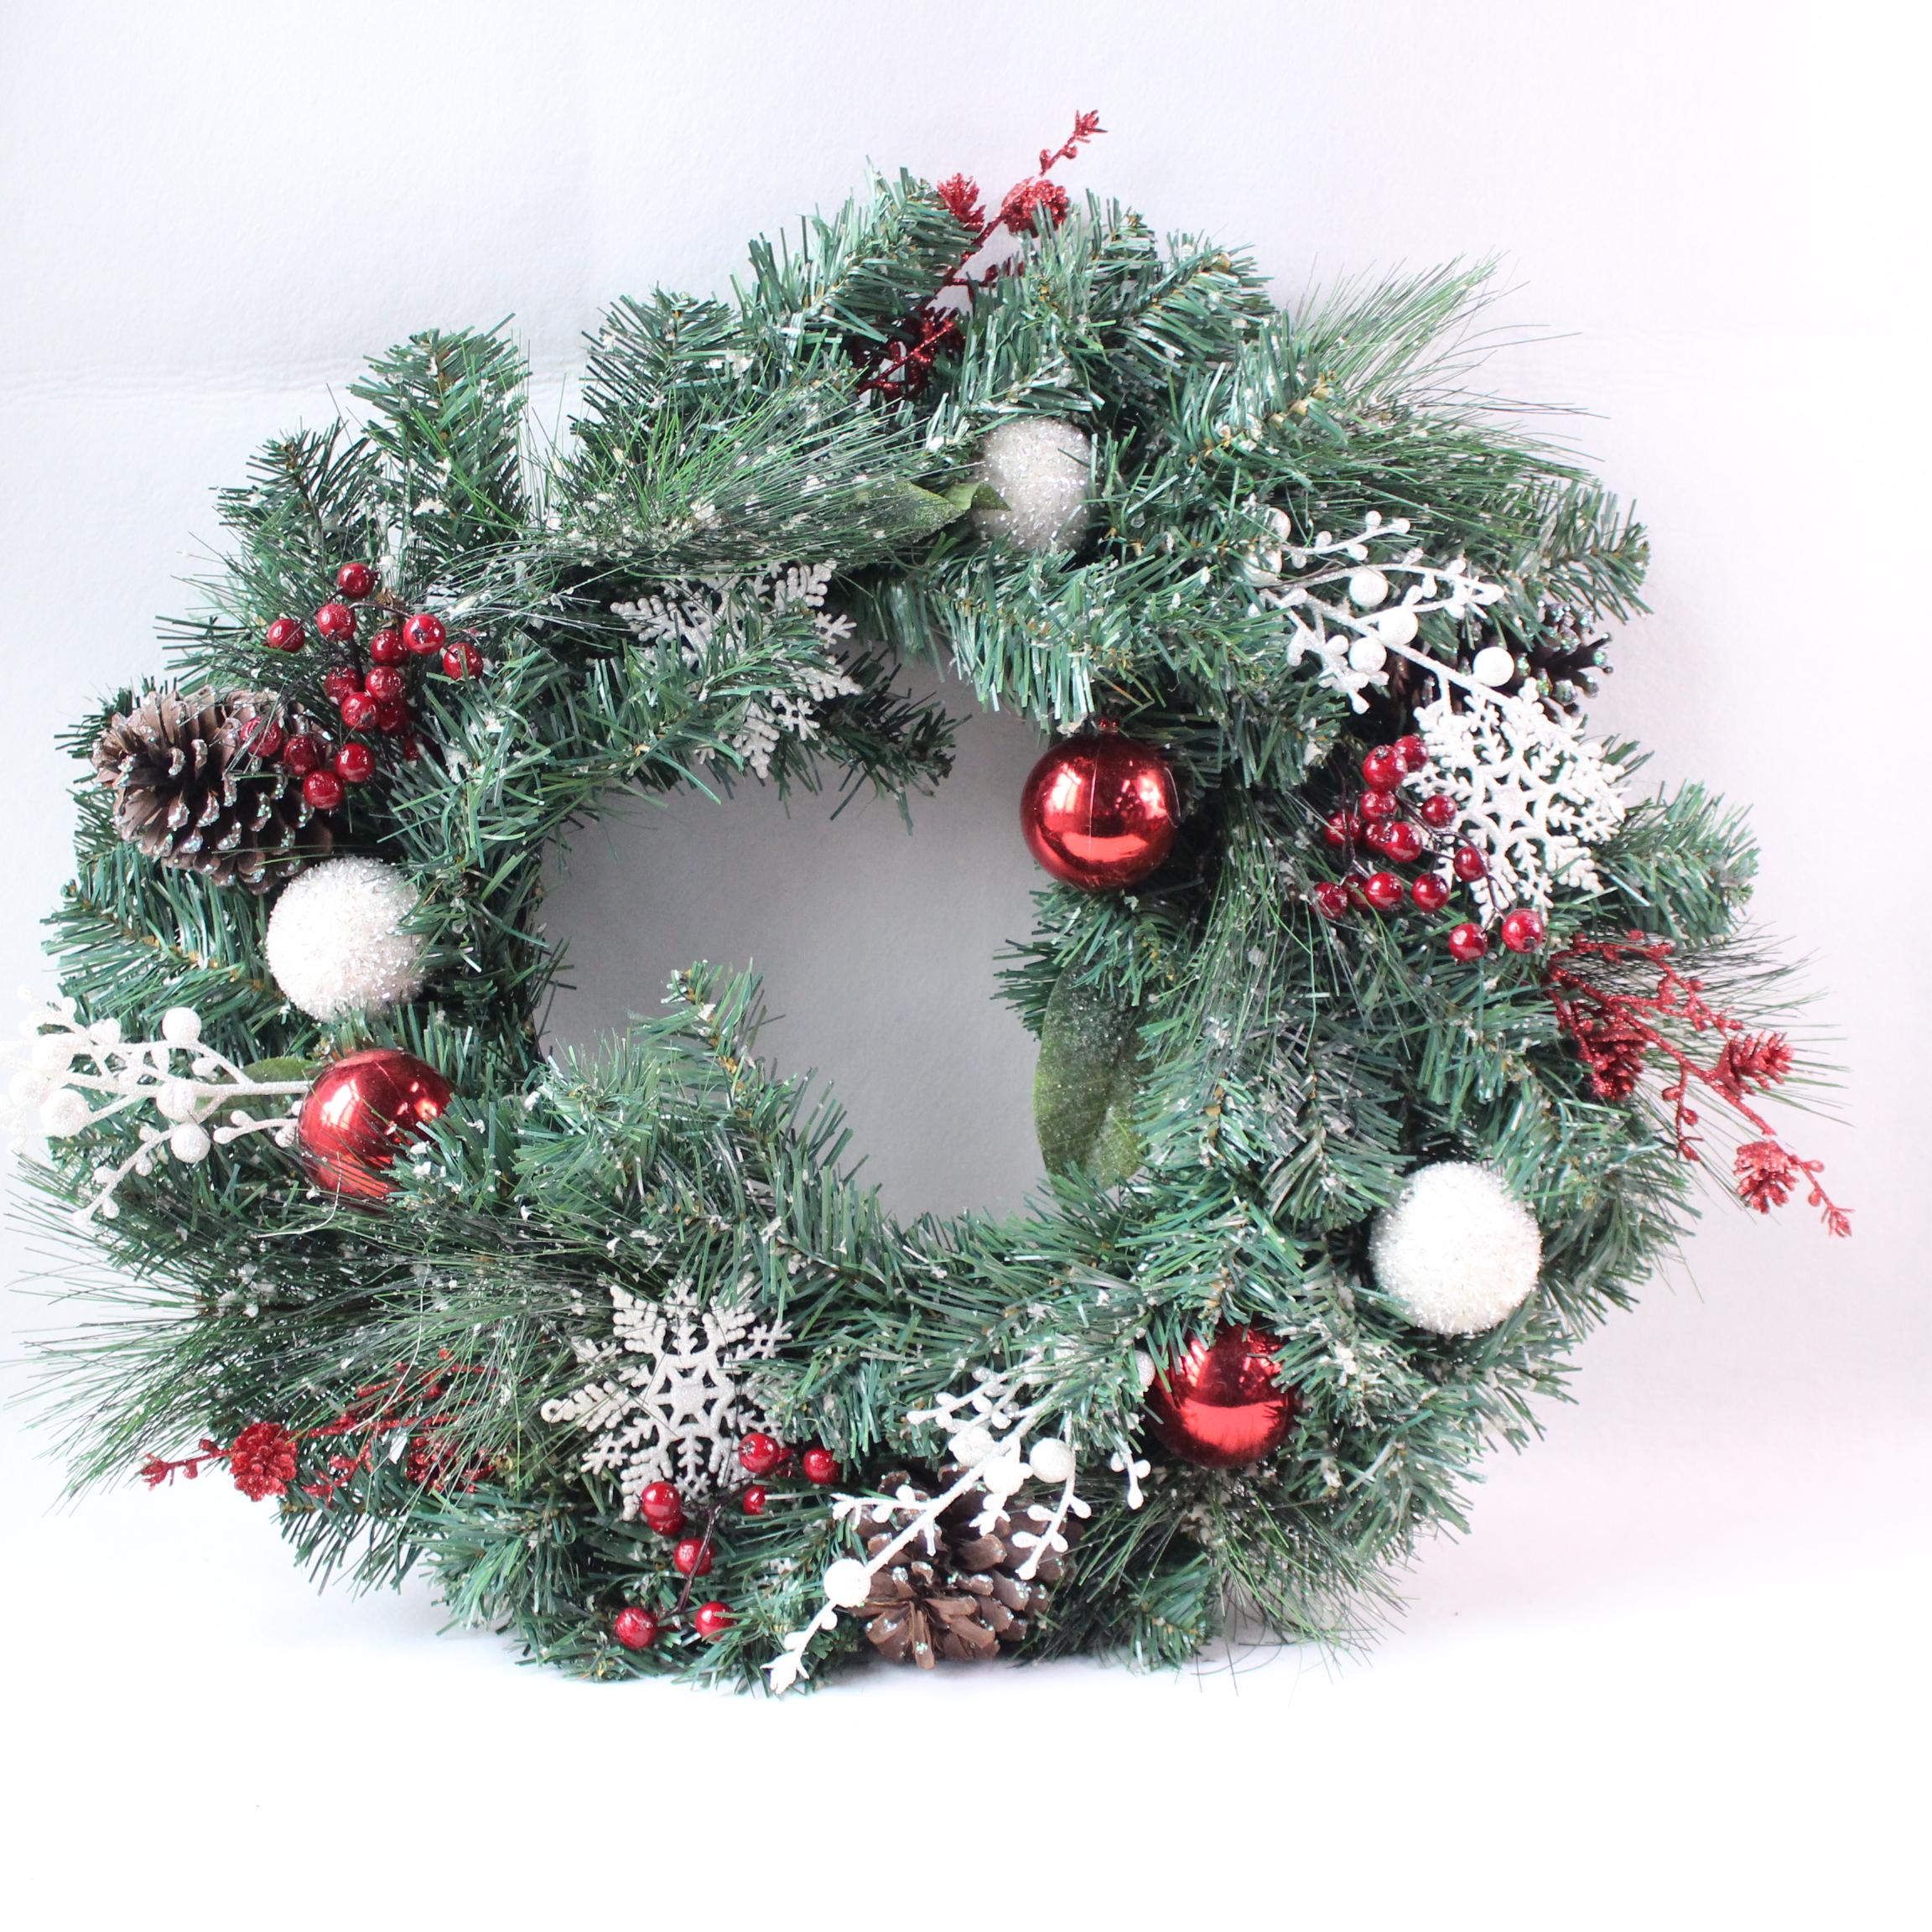 Simulated Handmade Christmas Wreath Spruce Wreath Circle Silk Artificial Garland Hanging Decoration Celebration Party Supplie Buy Christmas Wreath Christmas Wreath Artificial Christmas Wreath Decoration Product On Alibaba Com